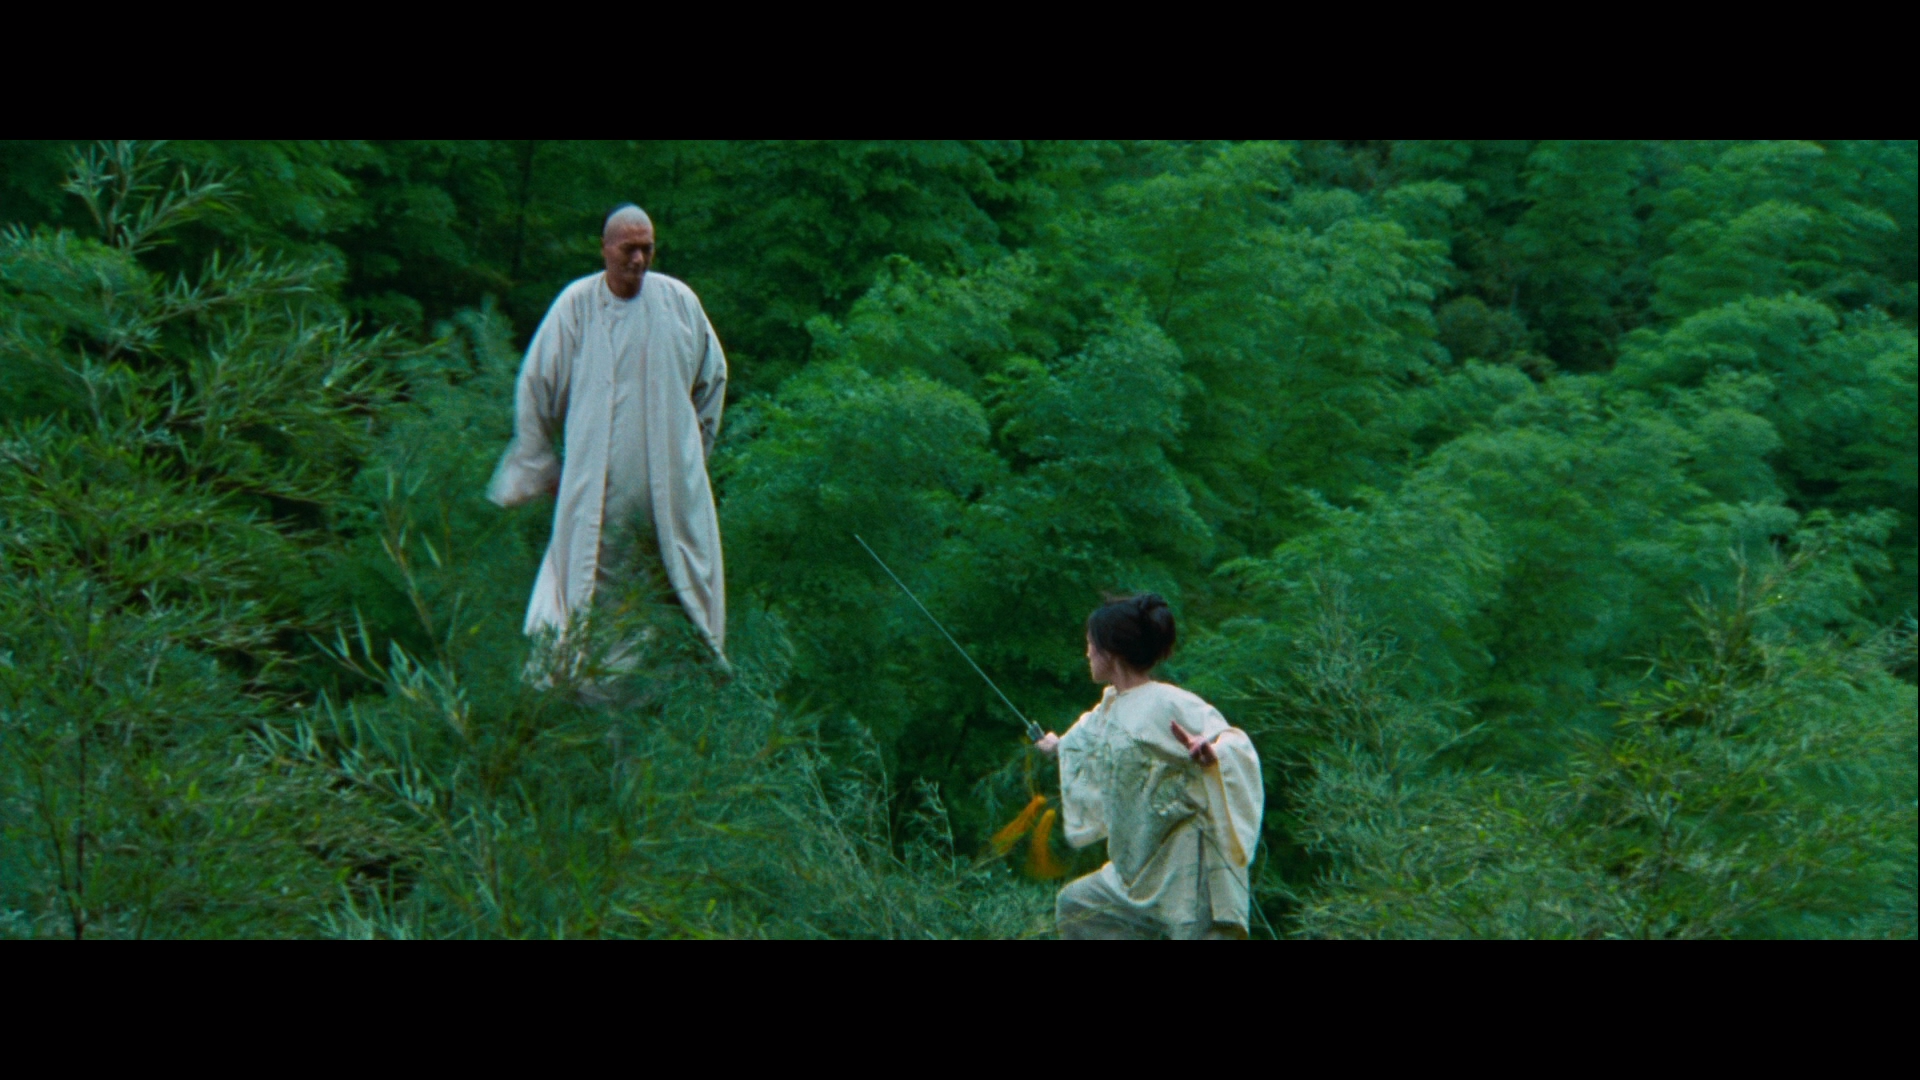 10 Best images about Crouching Tiger, Hidden Dragon on Pinterest